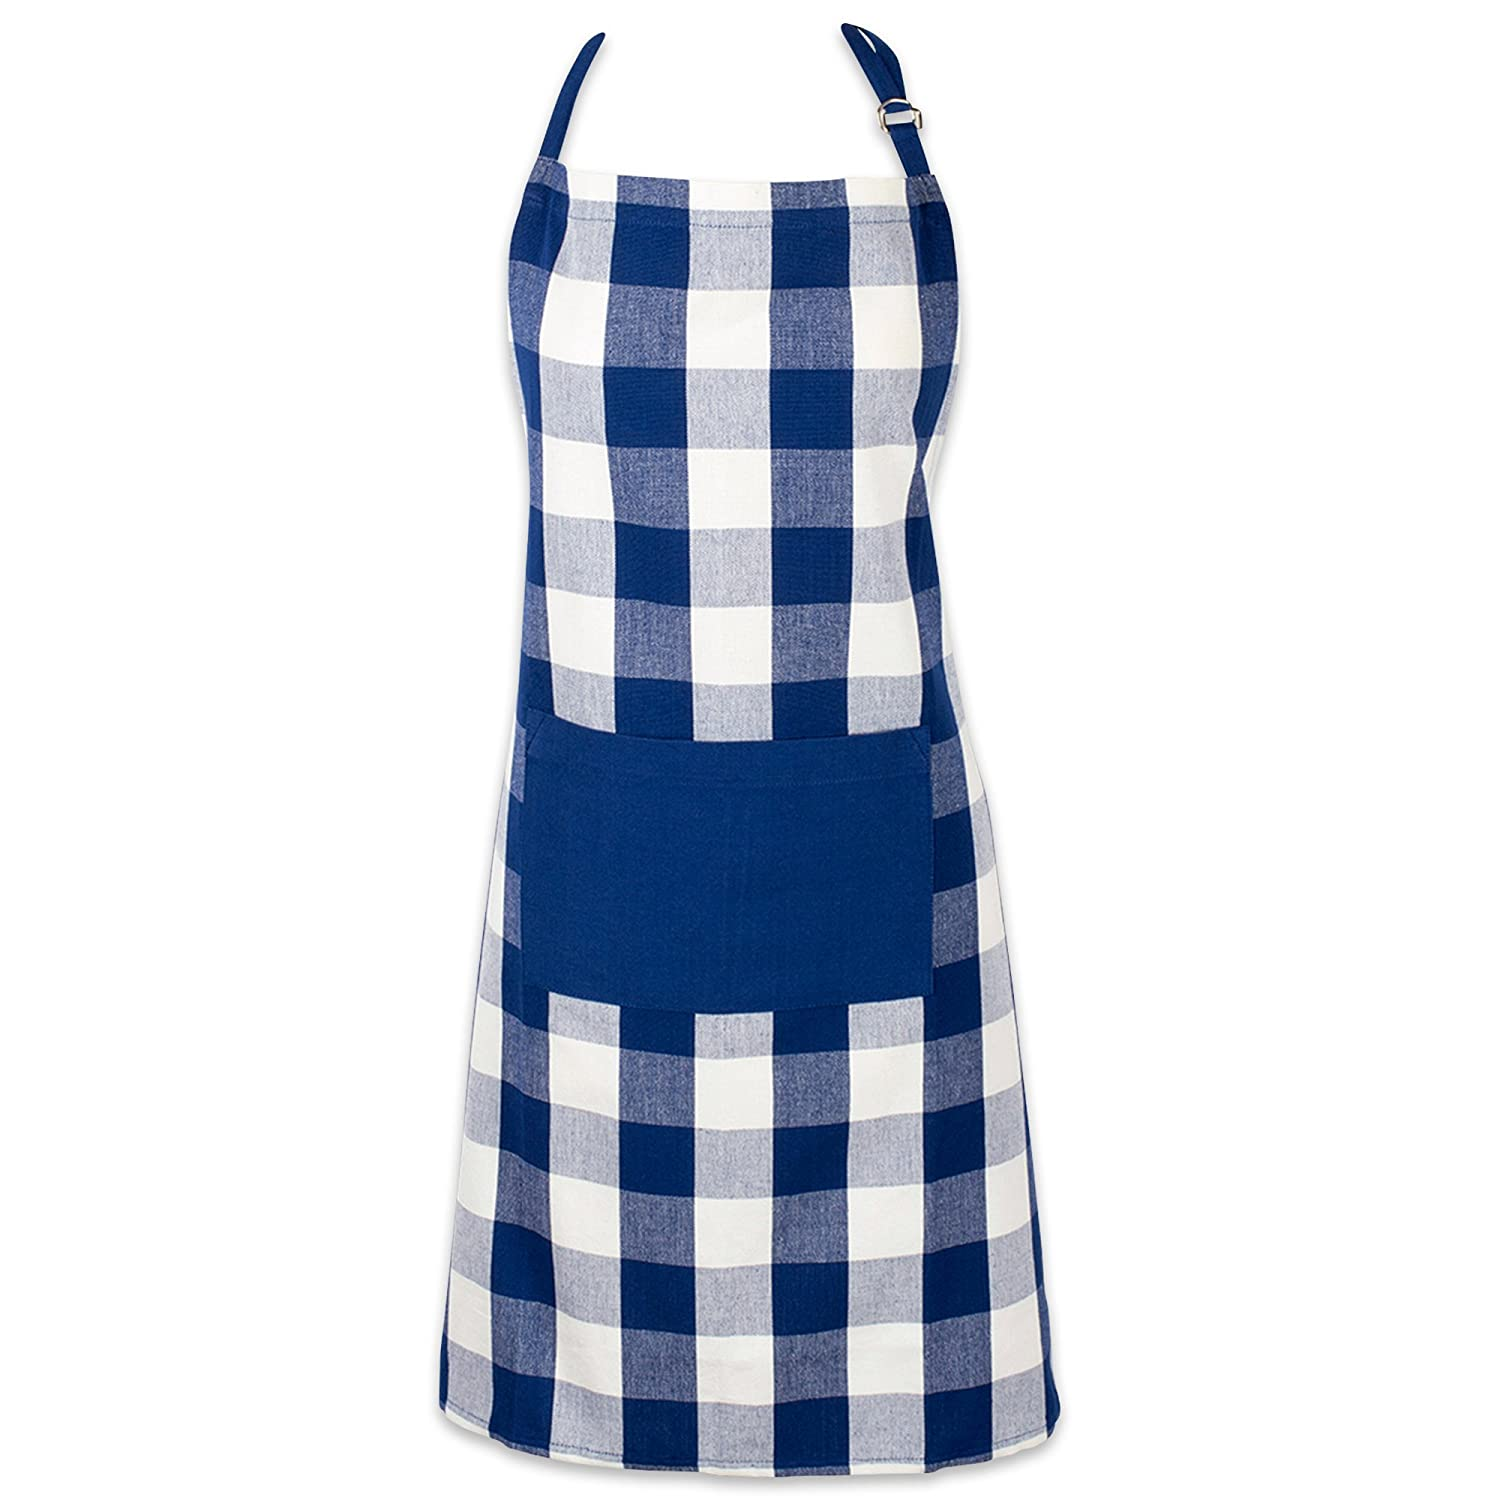 "DII Cotton Adjustable Buffalo Check Plaid Apron with Pocket & Extra-Long Ties, 32 x 28"", Men and Women Kitchen Apron for Cooking, Baking, Crafting, Gardening, & BBQ - Navy & Cream"